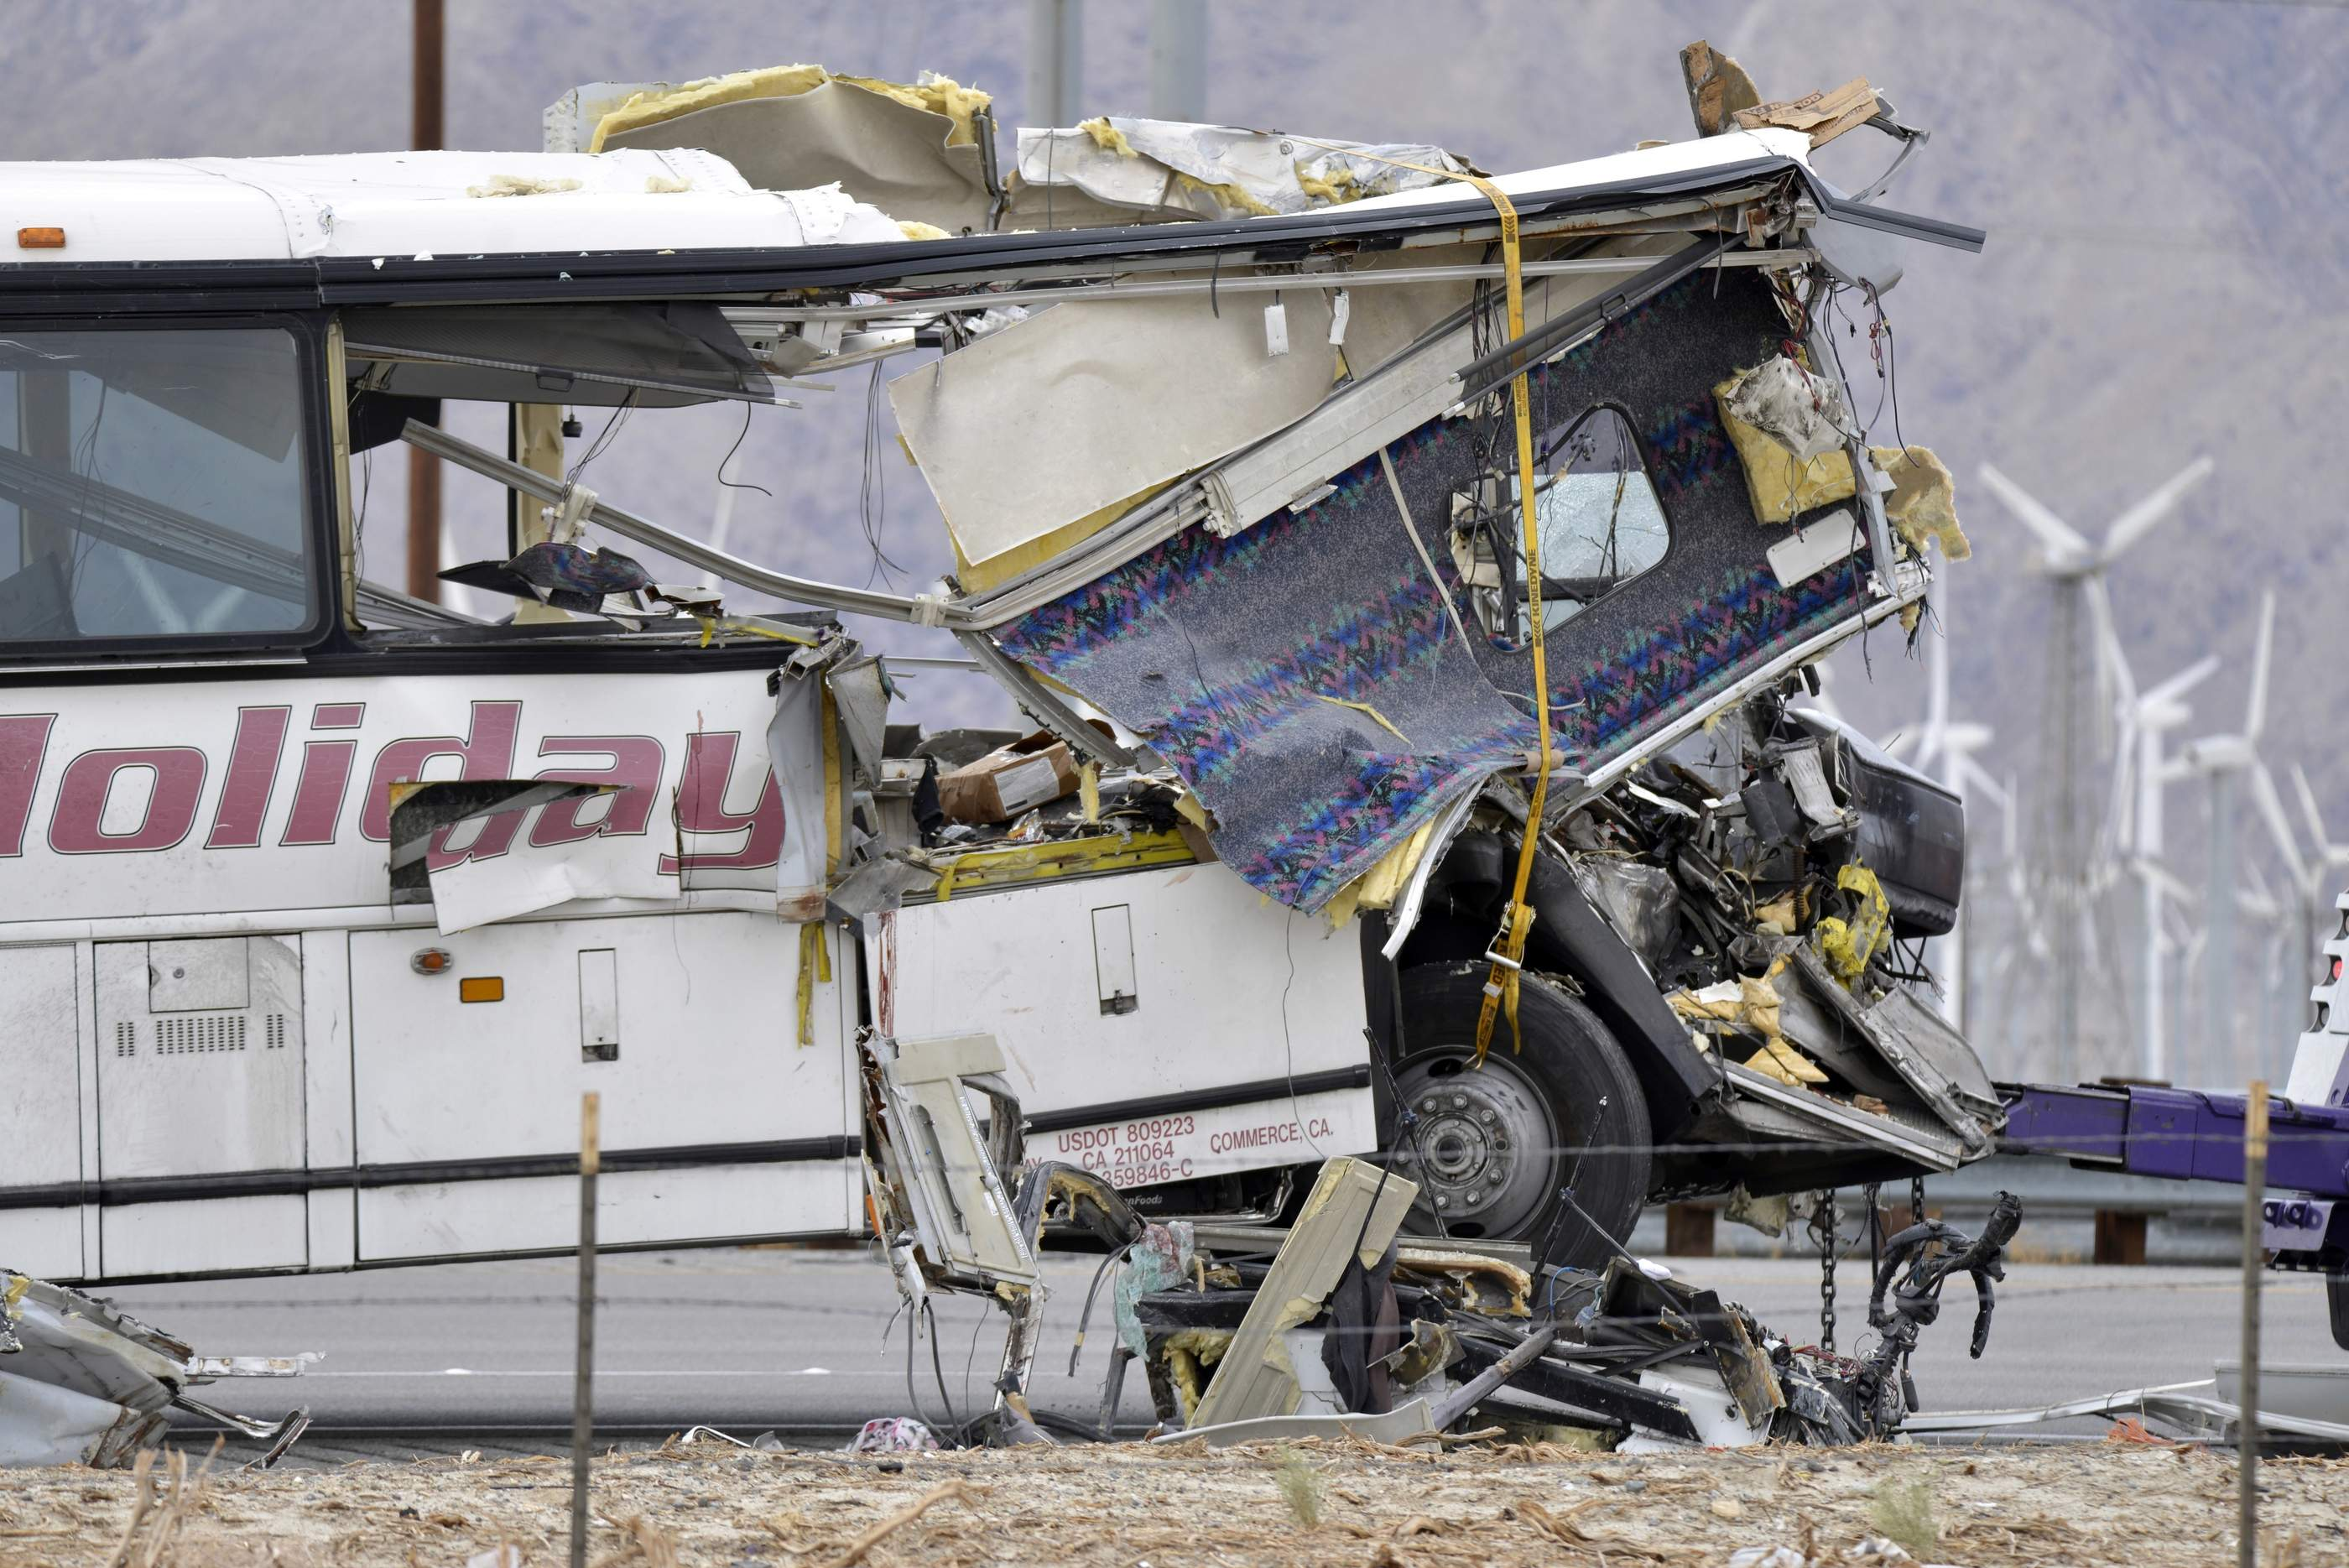 The damaged front of a tour bus is seen that crashed into the back of a semi-truck on Interstate 10 just north of the desert resort town of Palm Springs, in Desert Hot Springs, Calif., Sunday, Oct. 23, 2016. Several deaths and injuries were reported. | AP Photo/Rodrigo Pena, St. George News